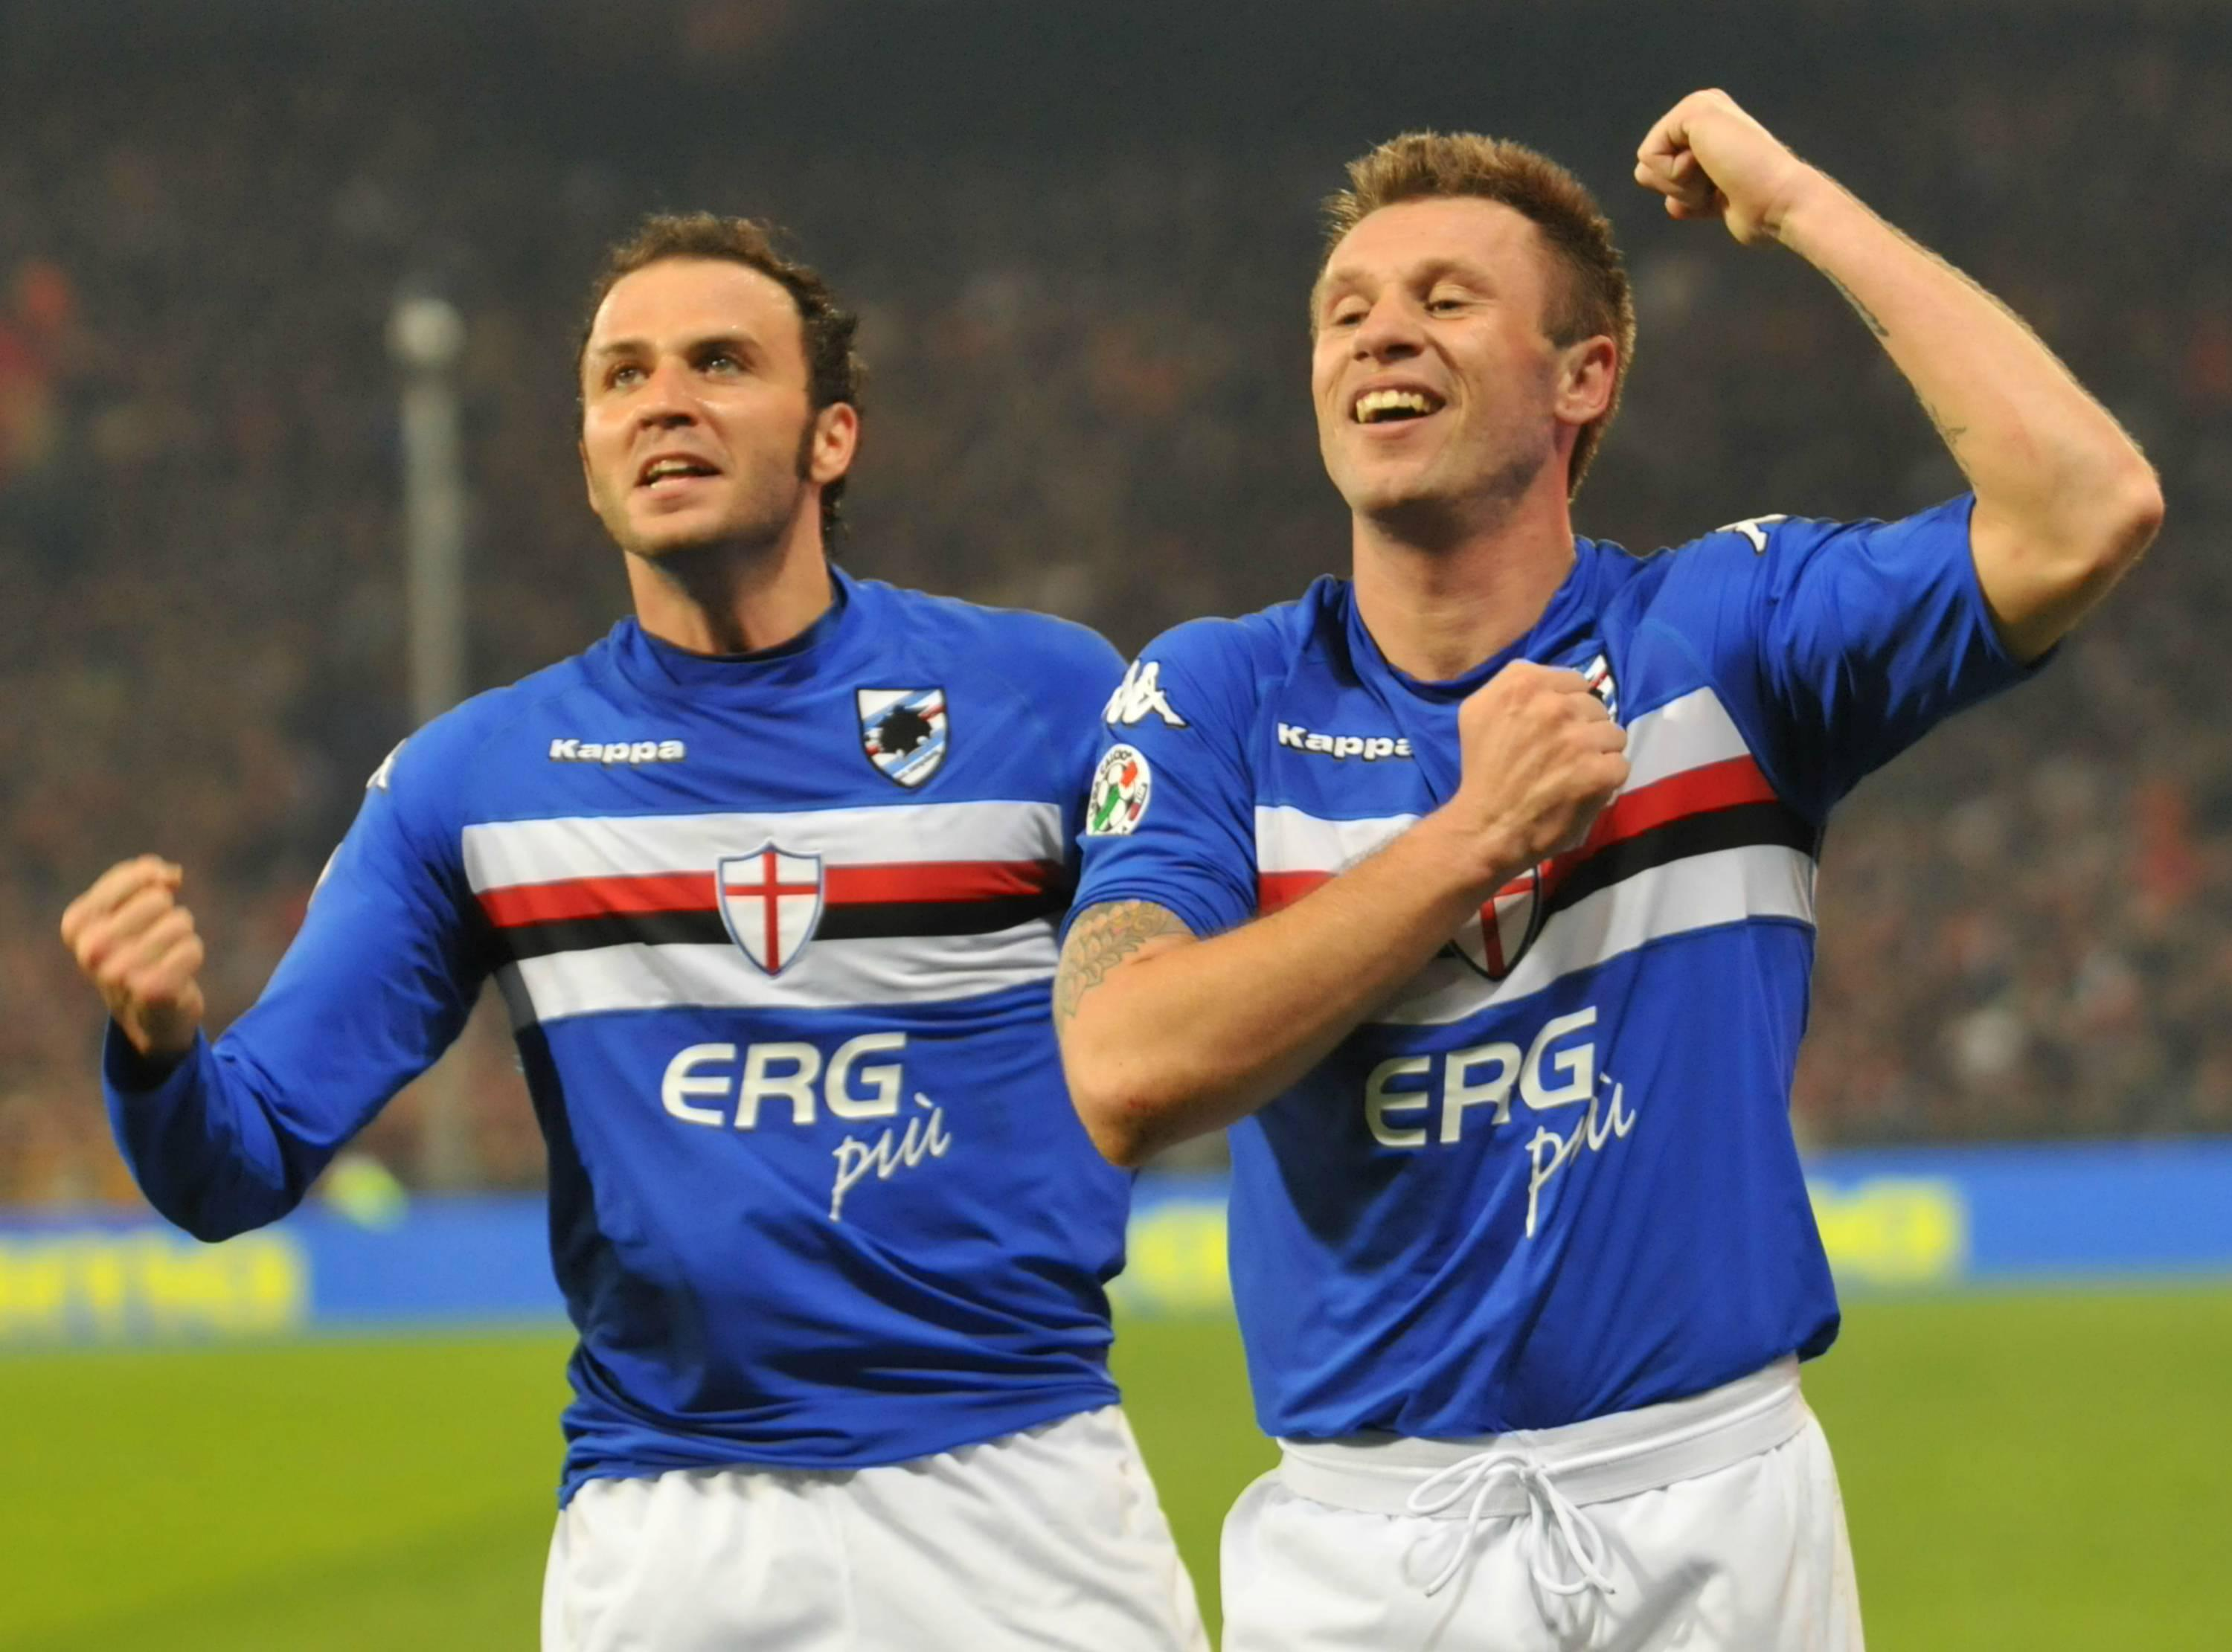 Pazzini e Cassano ai tempi della Sampdoria